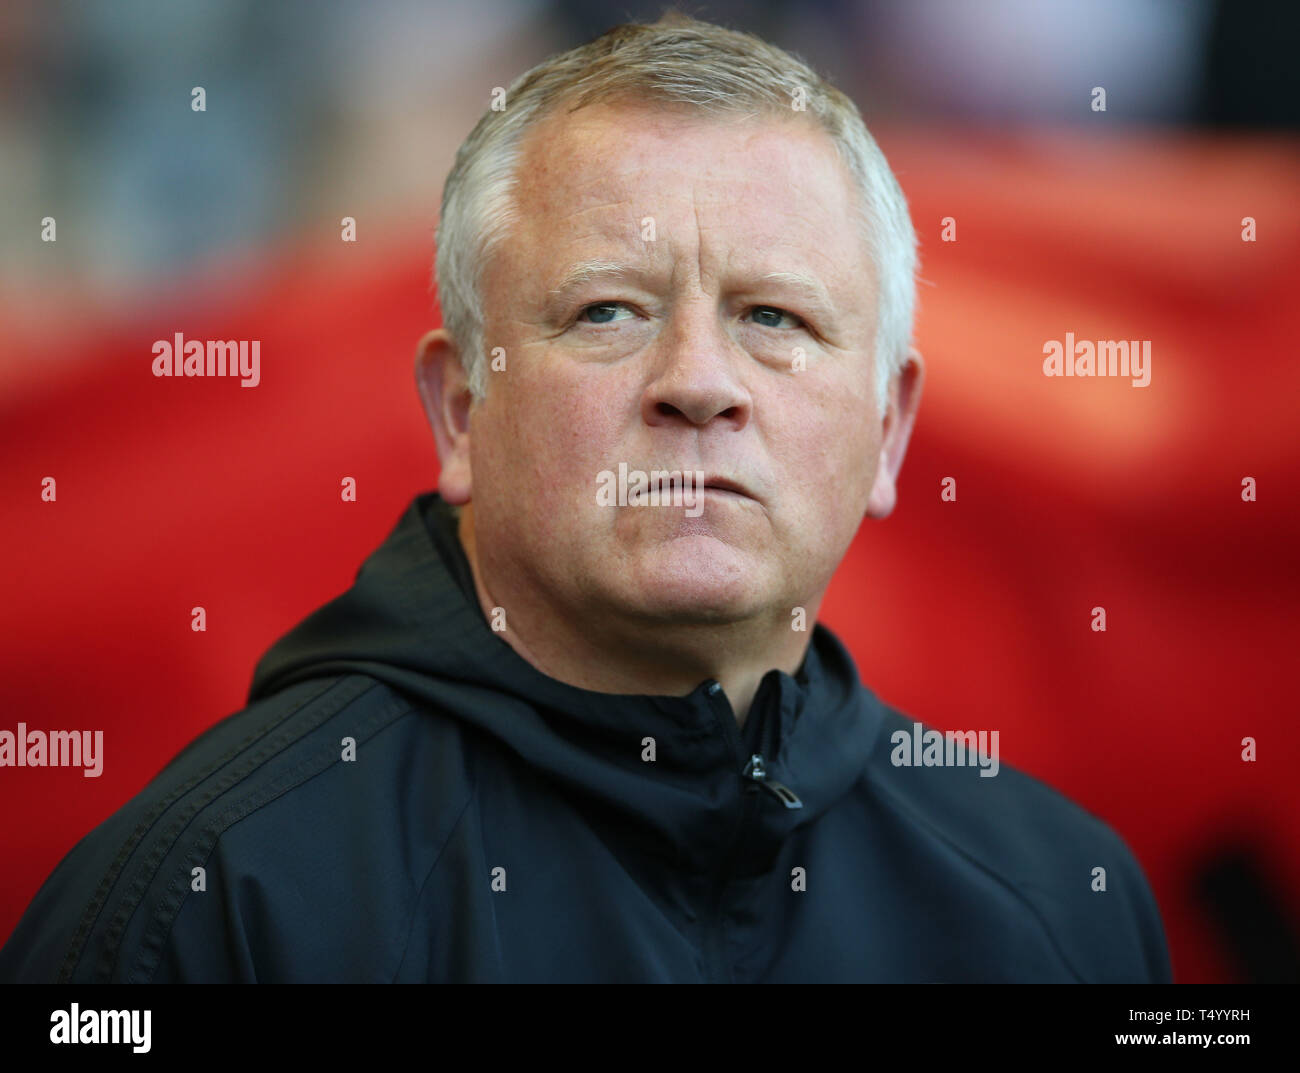 Sheffield United manager Chris Wilder during the Sky Bet Championship match at Bramall Lane, Sheffield. Stock Photo